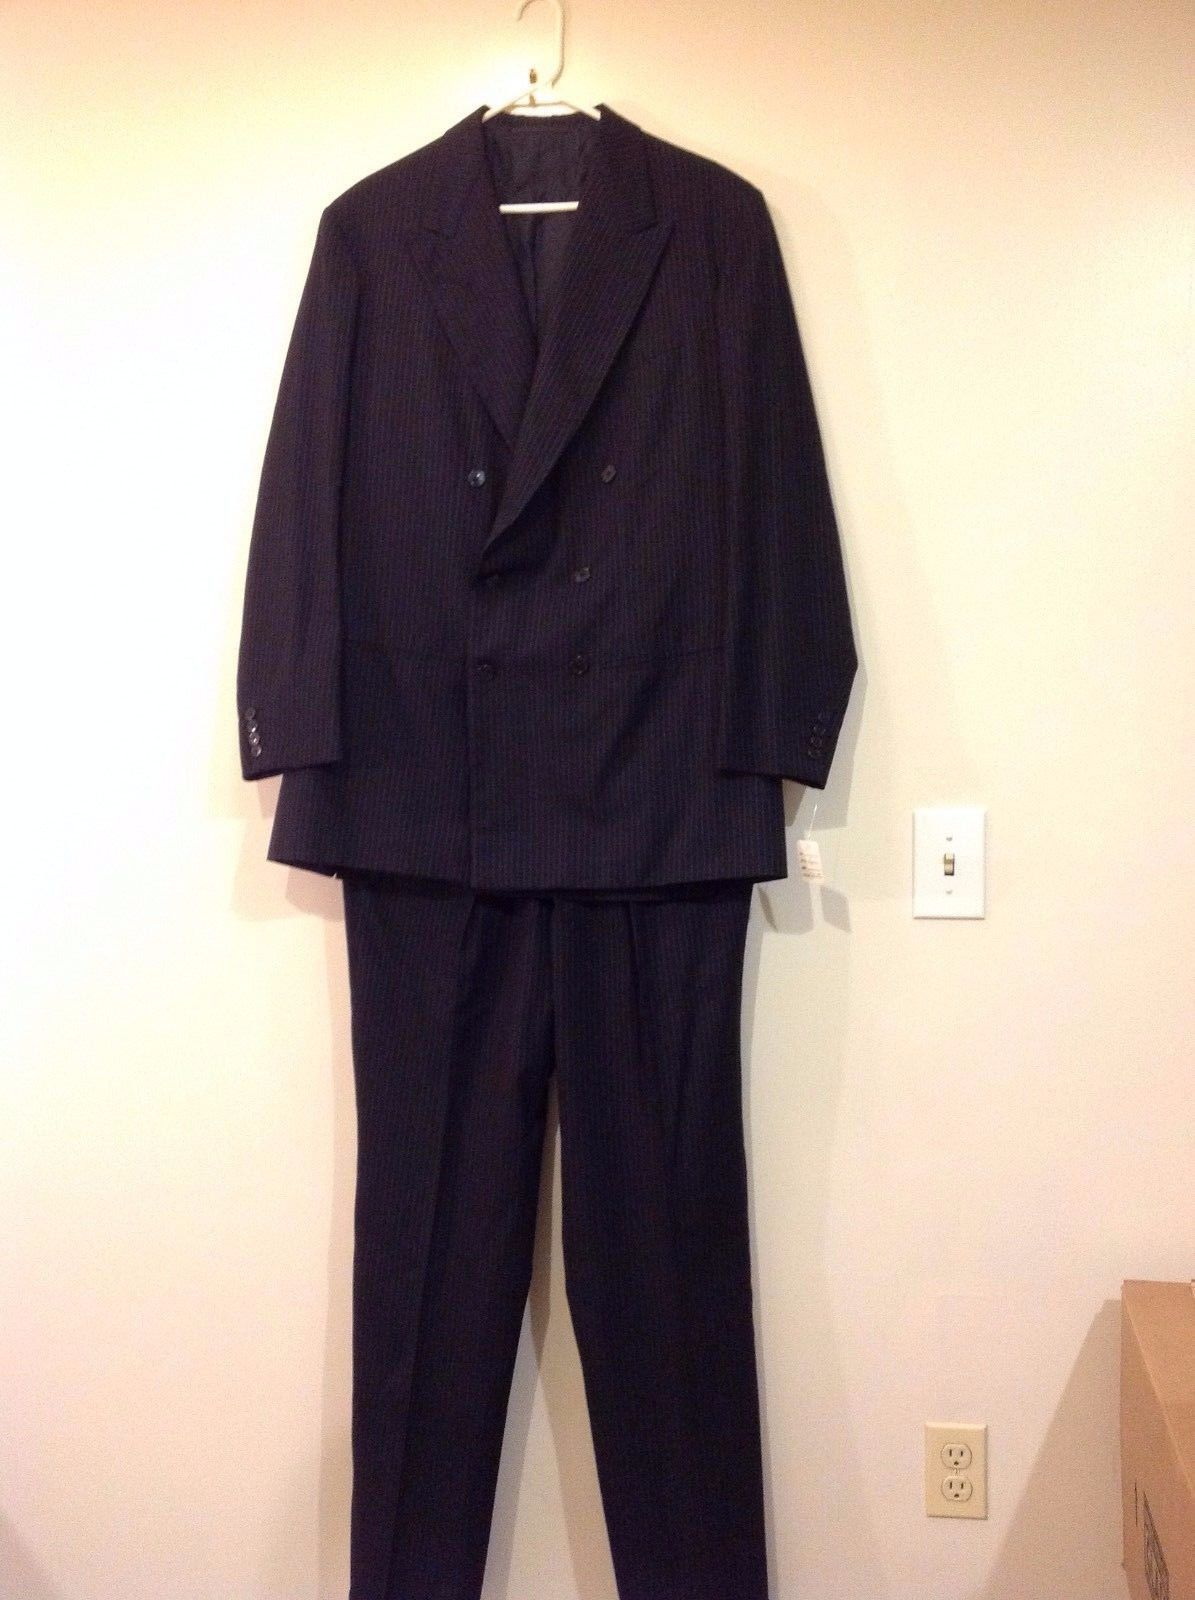 Man's Tall size two piece suit jacket pants pinstripe worsted wool black gray